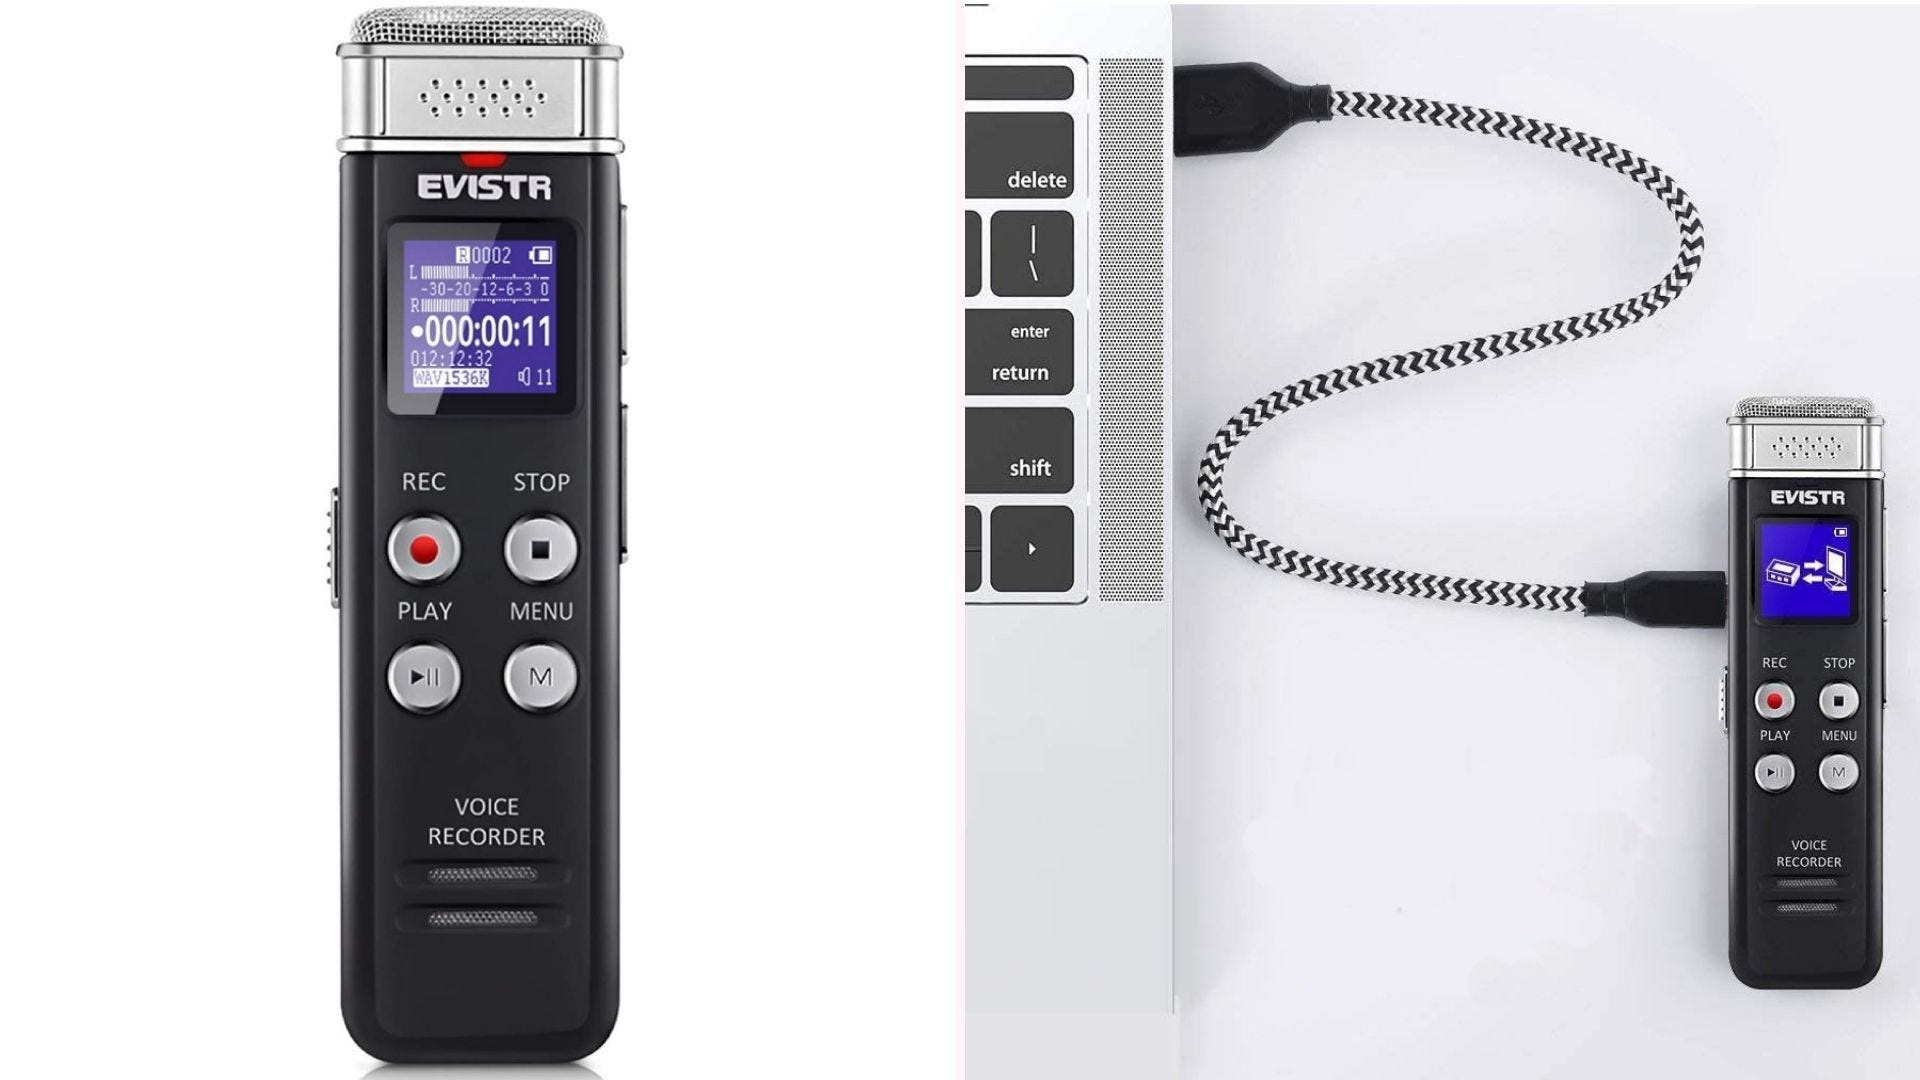 Compact black 16GB voice recorder with digital display, voice activated recording, and noise cancellation microphone